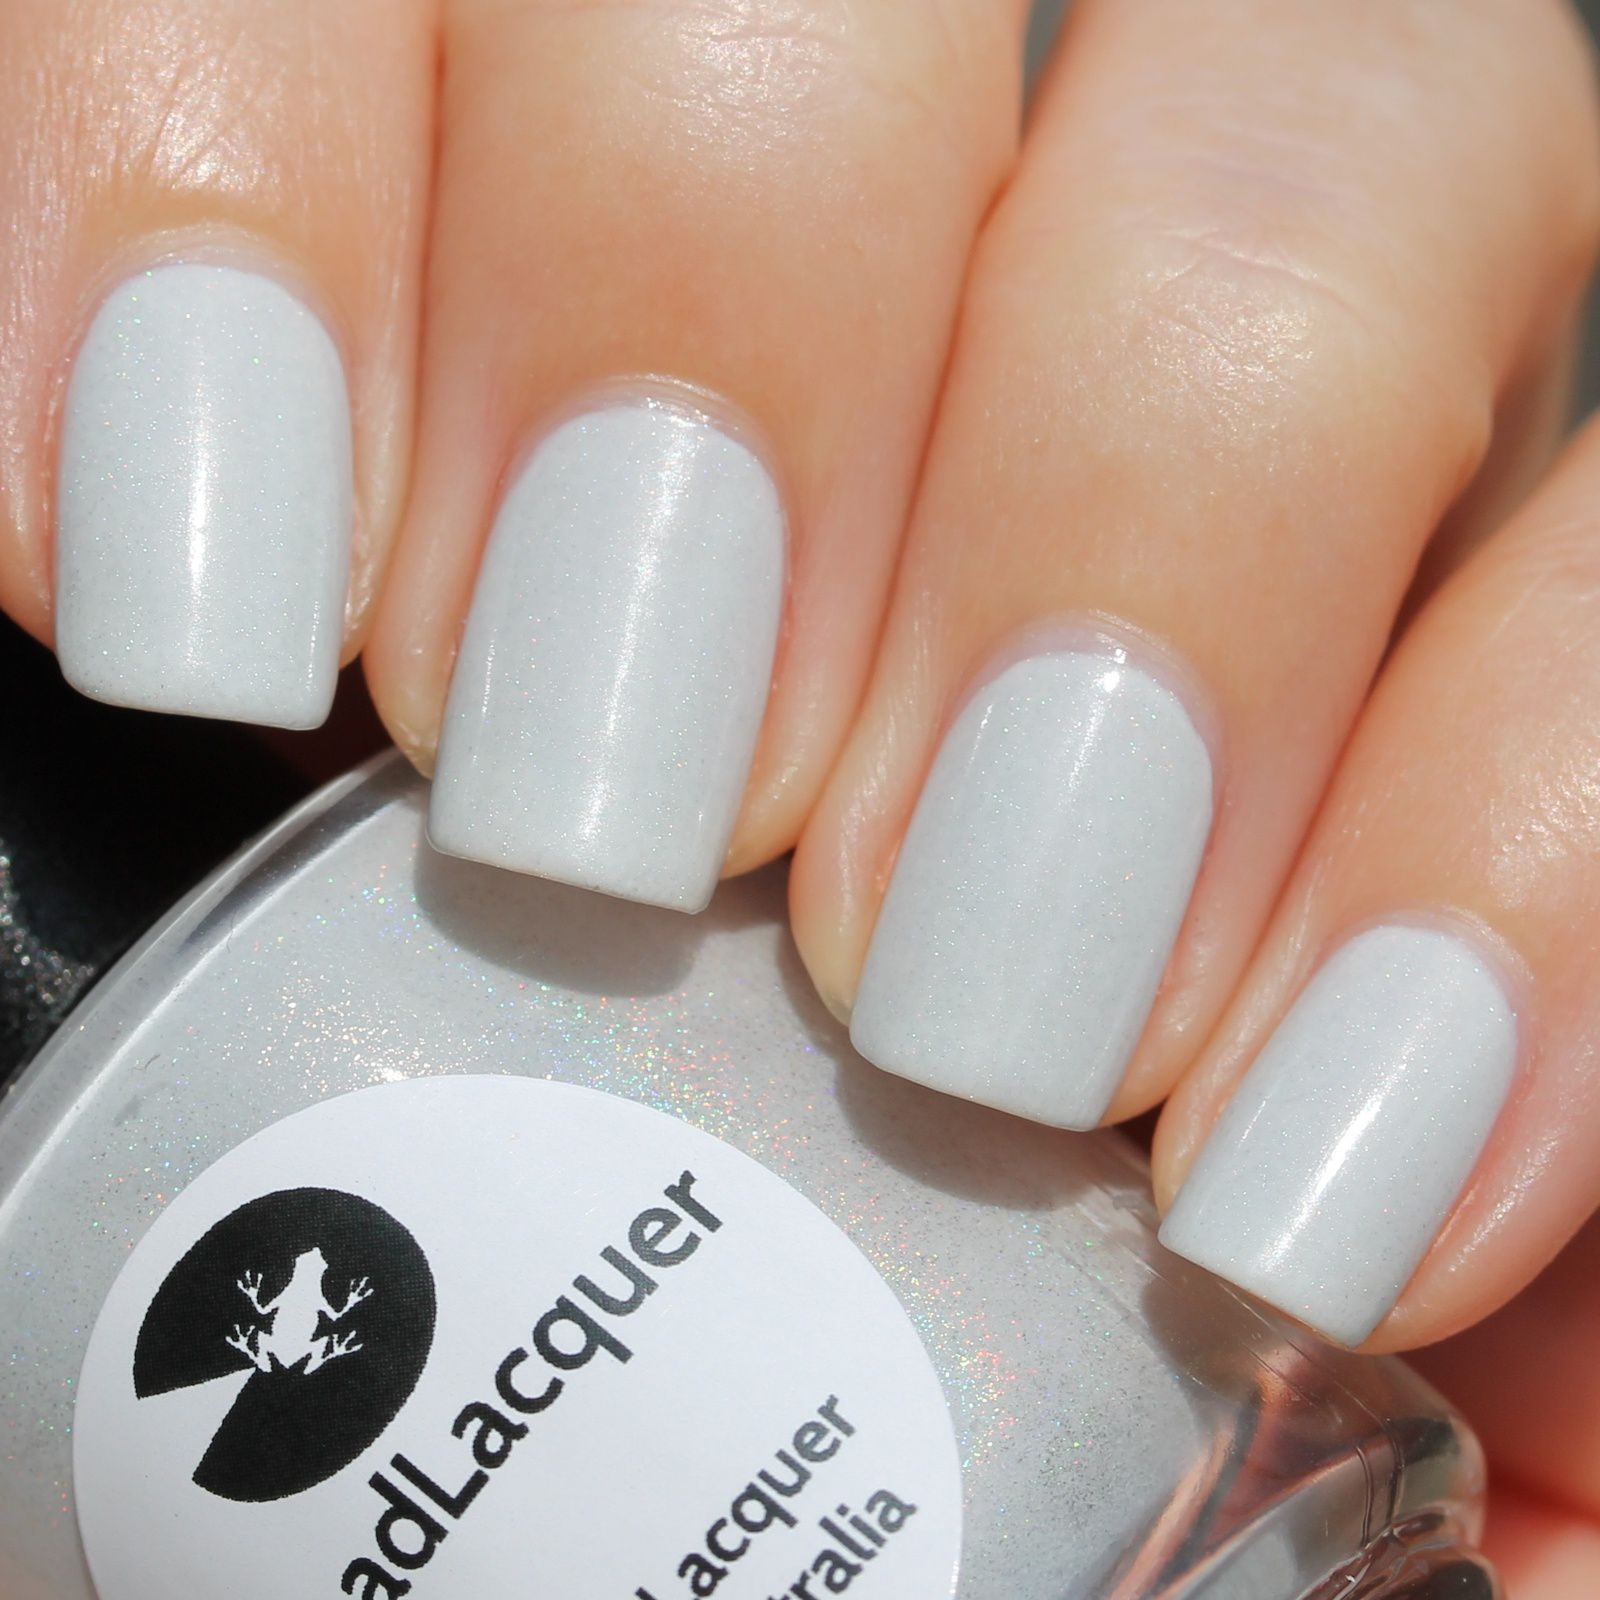 Duri Rejuvacote / Lilypad Lacquer In The Milkyway / OutTheDoor Top Coat